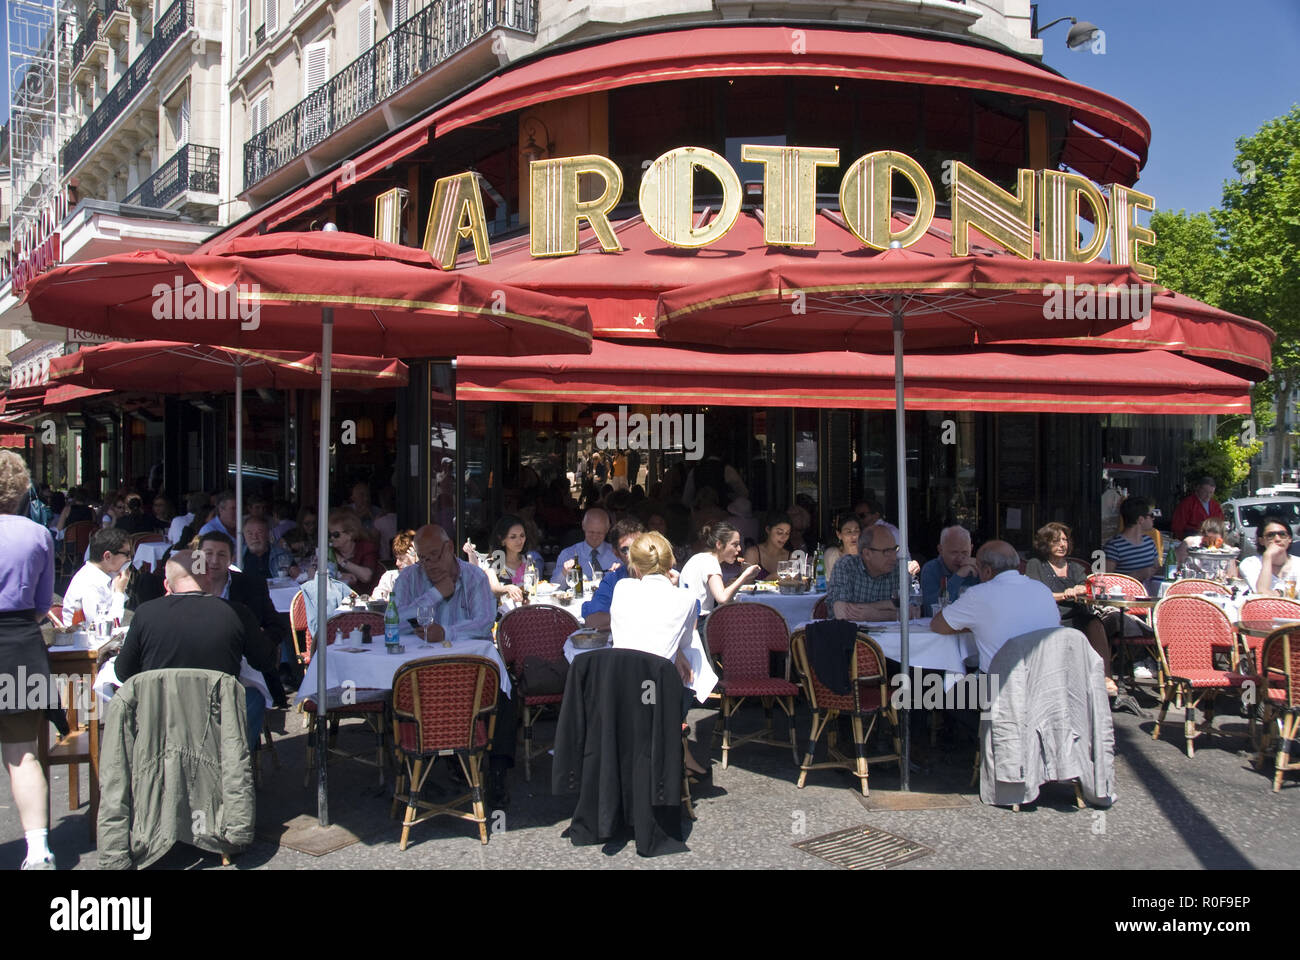 People lunch at La Rotonde, a popular and historic cafe in the Montparnasse area of Paris, France. - Stock Image